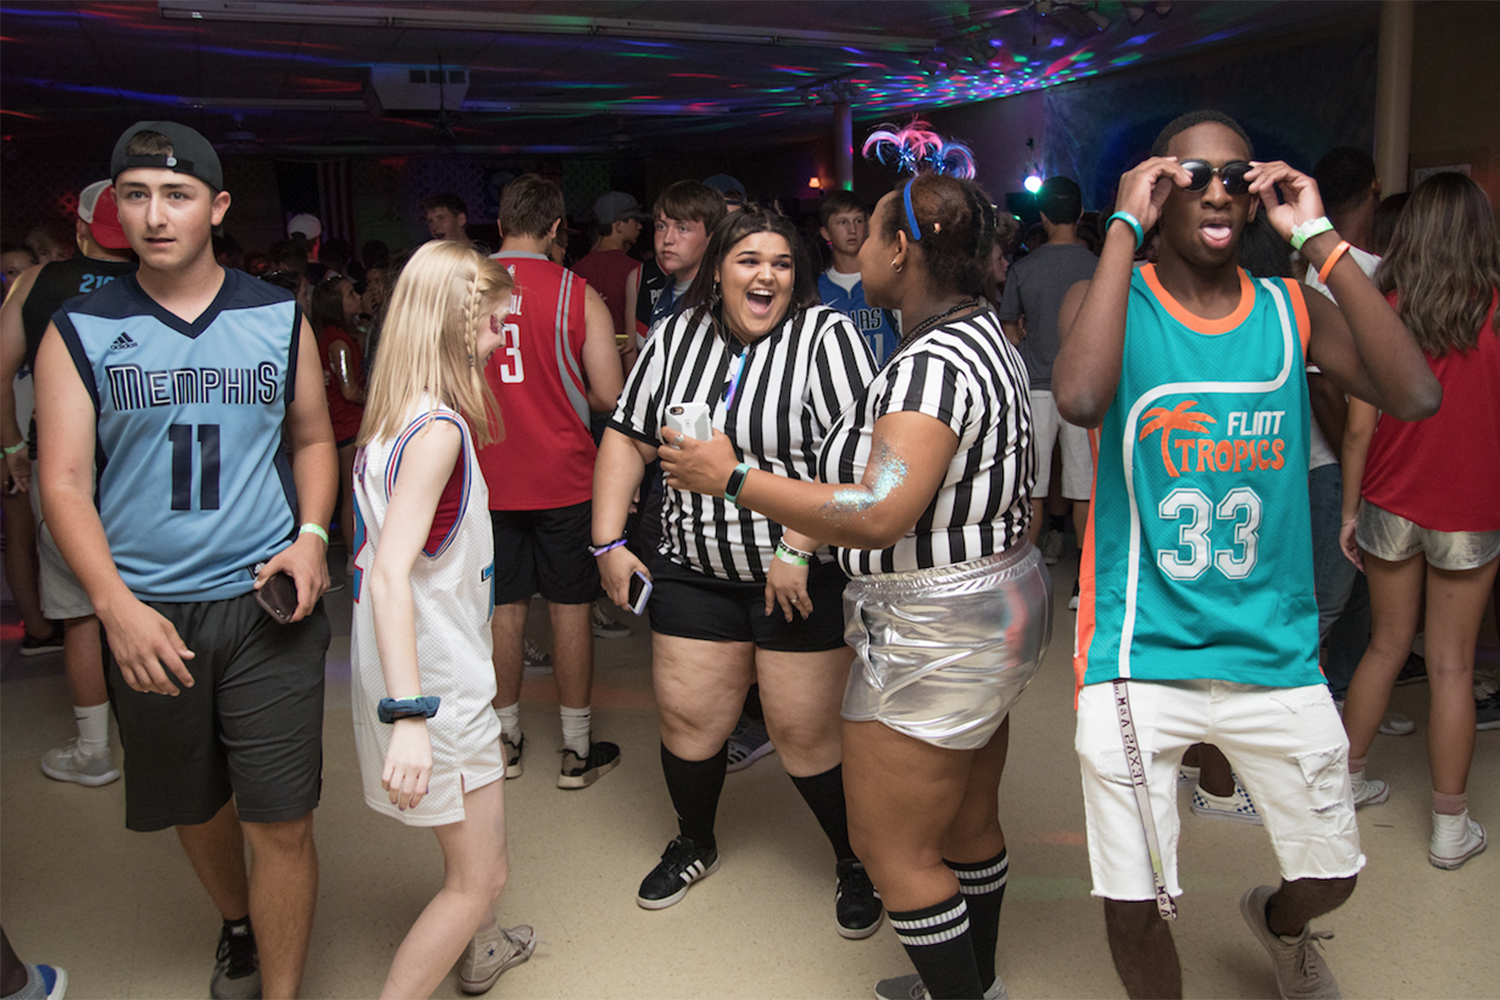 Texas High students reunite before the school year at summer Space Jam. Money raised from the dance was donated to Student Council. The dance was not school sponsored.